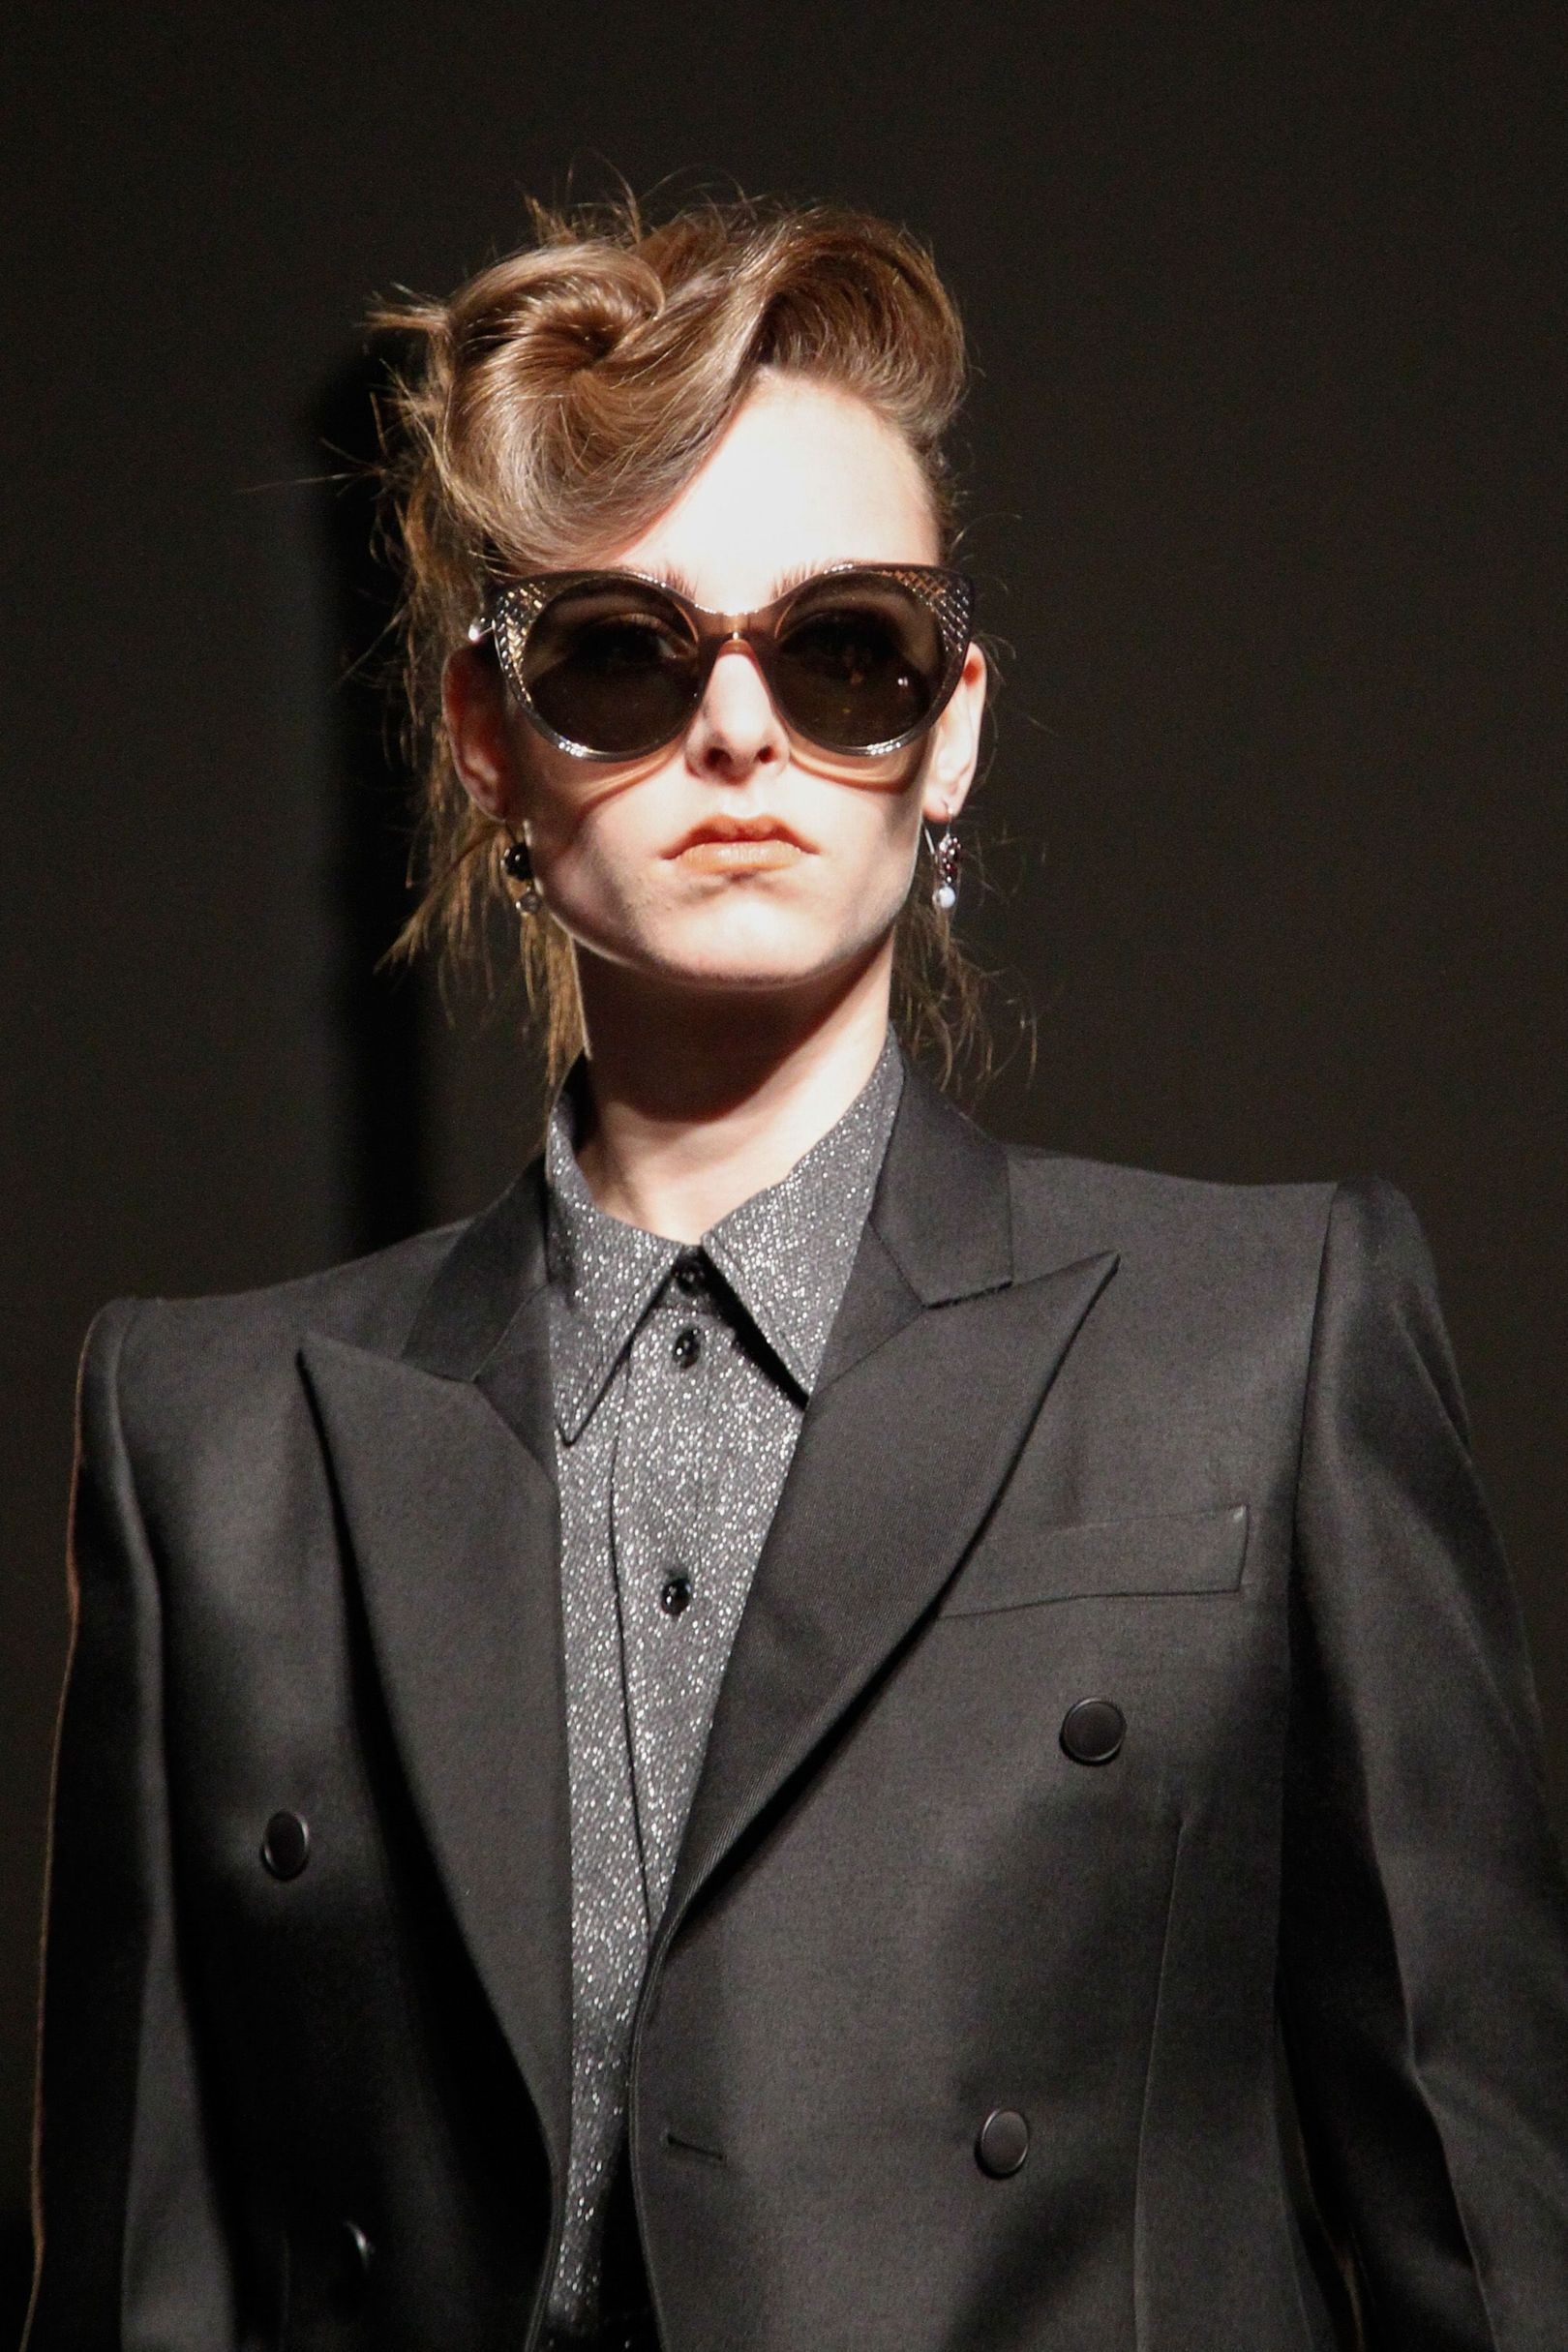 The City: Milan The Show: Bottega Veneta The Look: Coiffed fringes